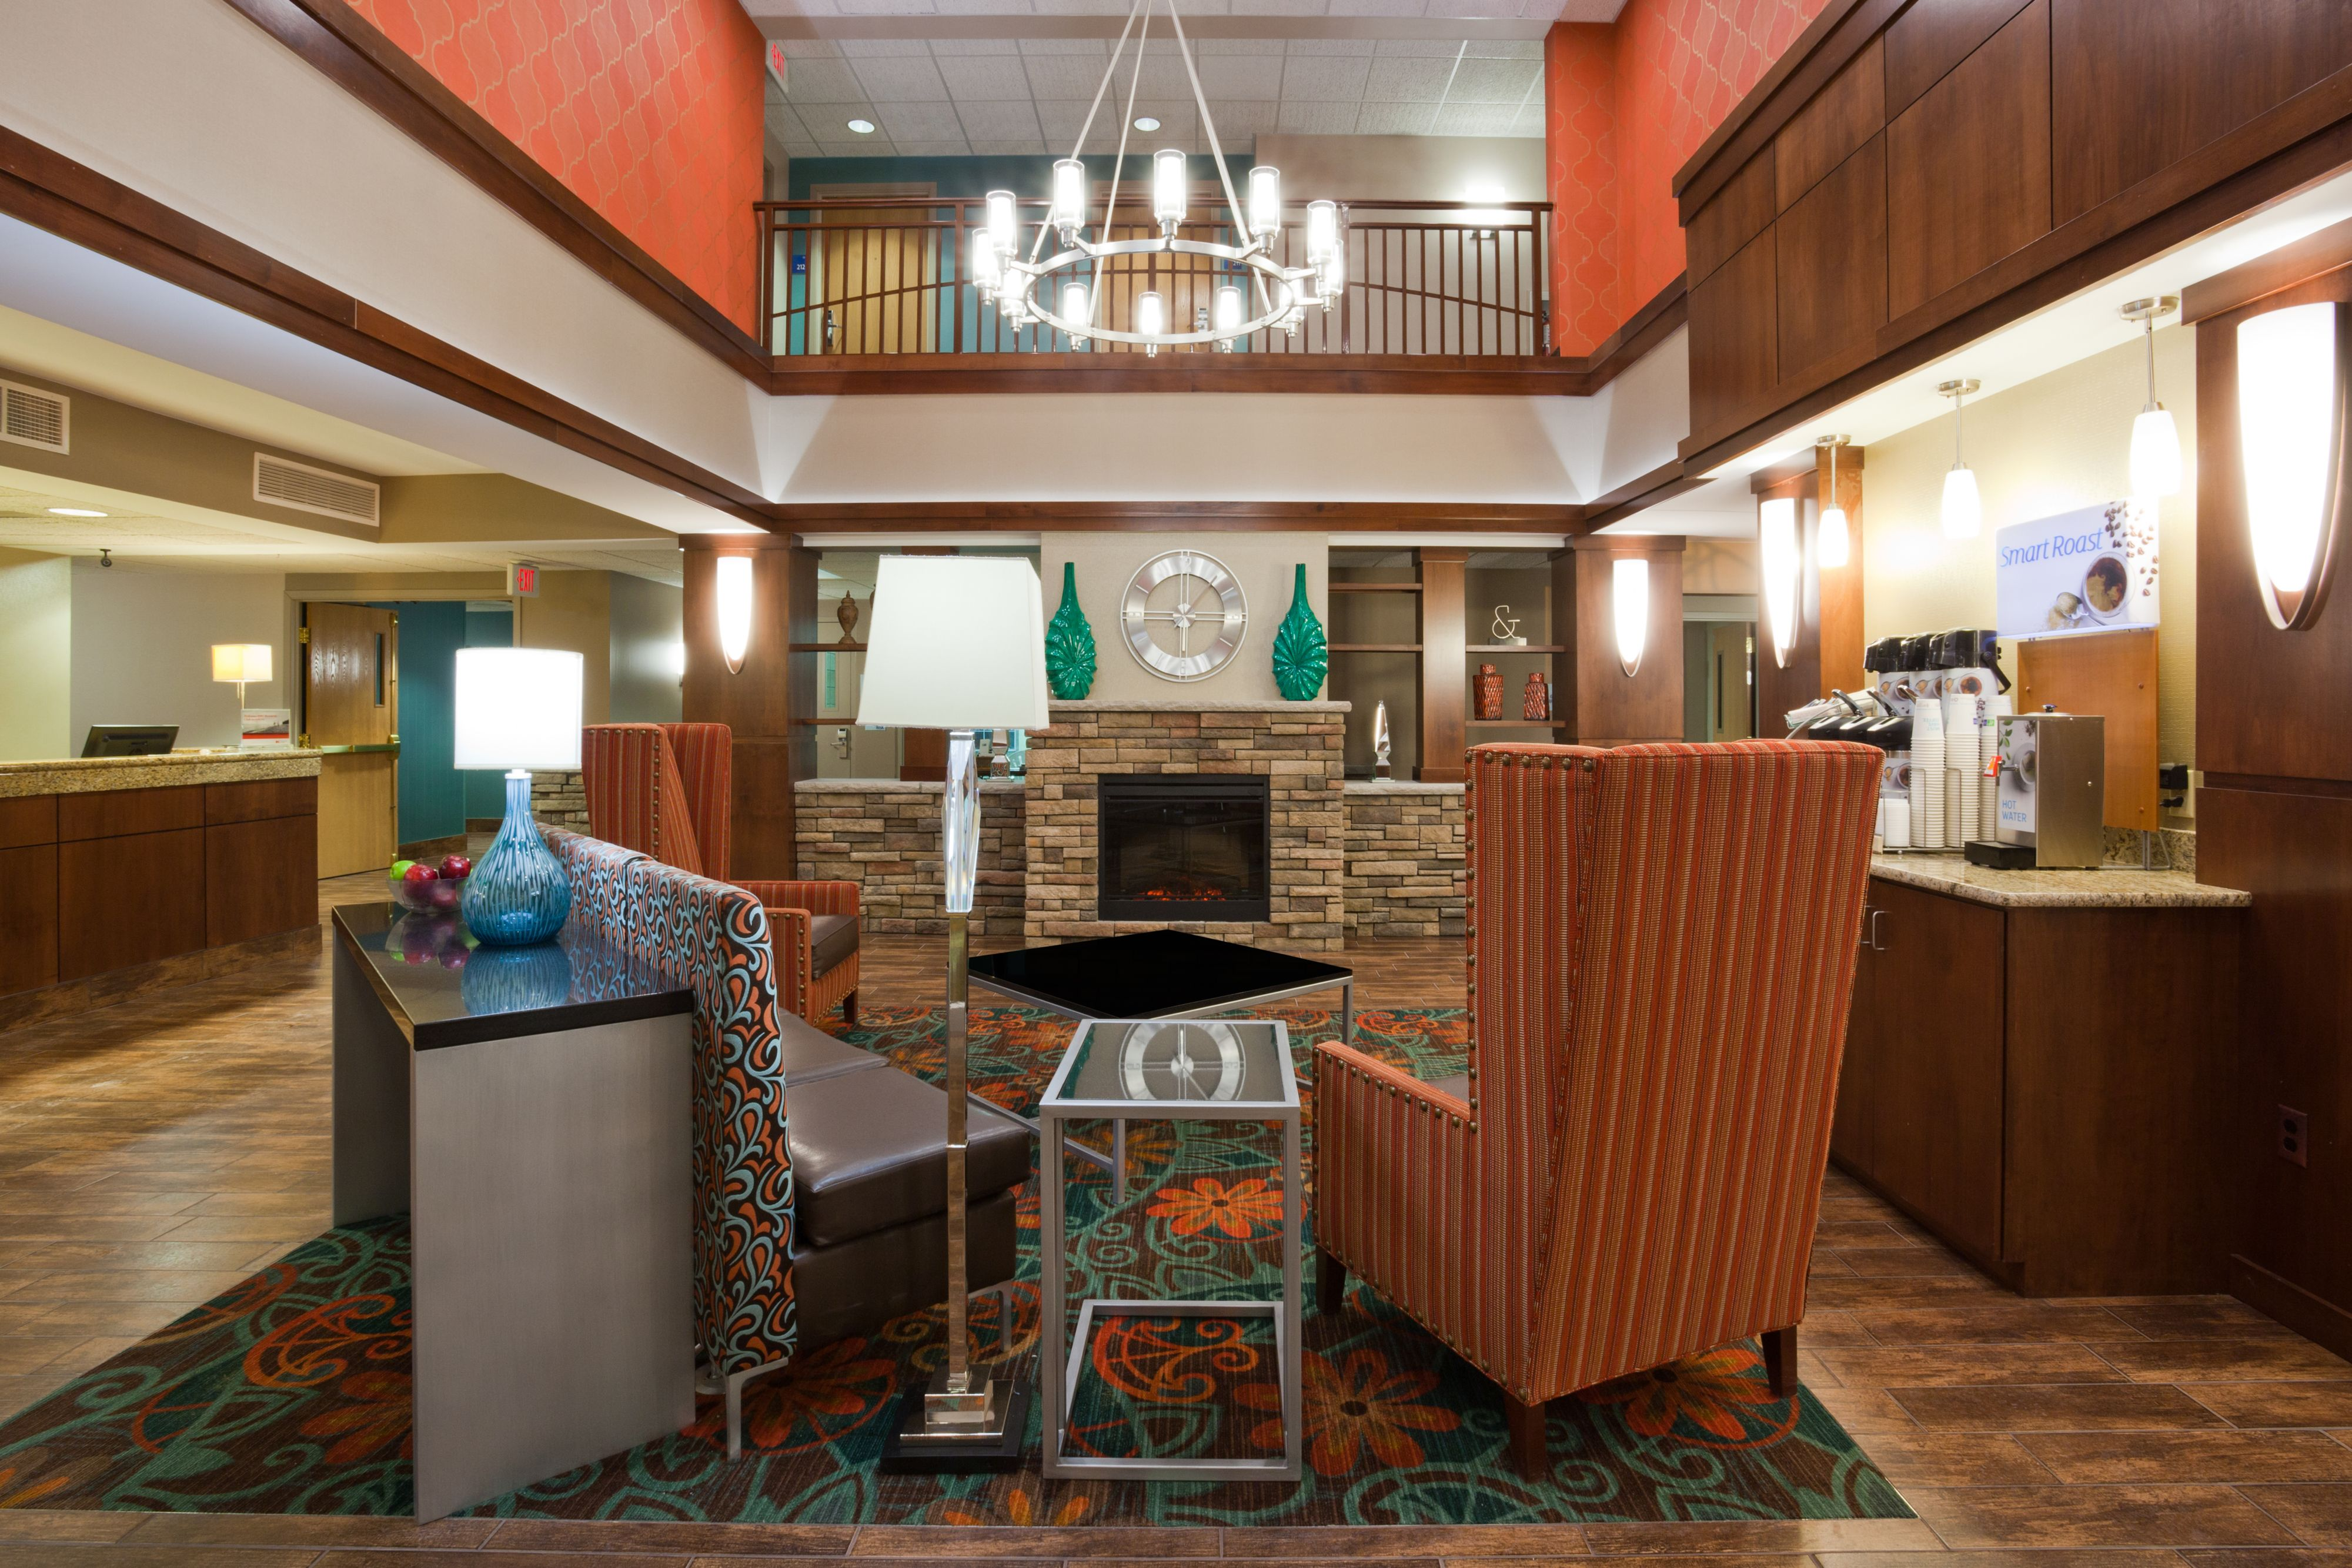 Holiday Inn Express & Suites St. Cloud image 4